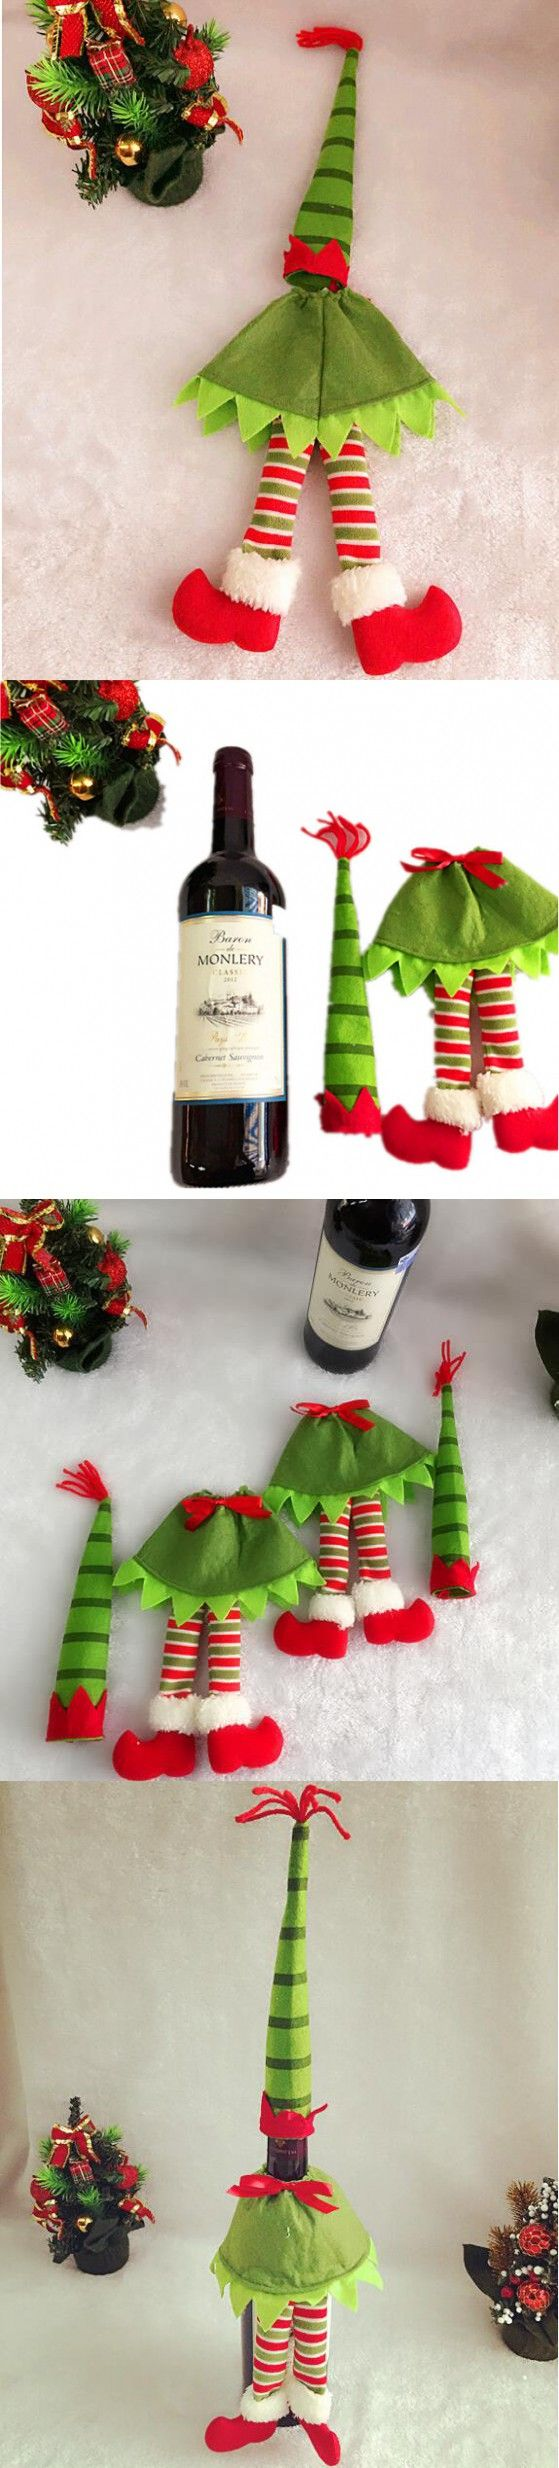 Christmas Decoration Supplies Red Wine Bottle Cover Bags Home Decoration Party Santa Claus Christmas $1.45